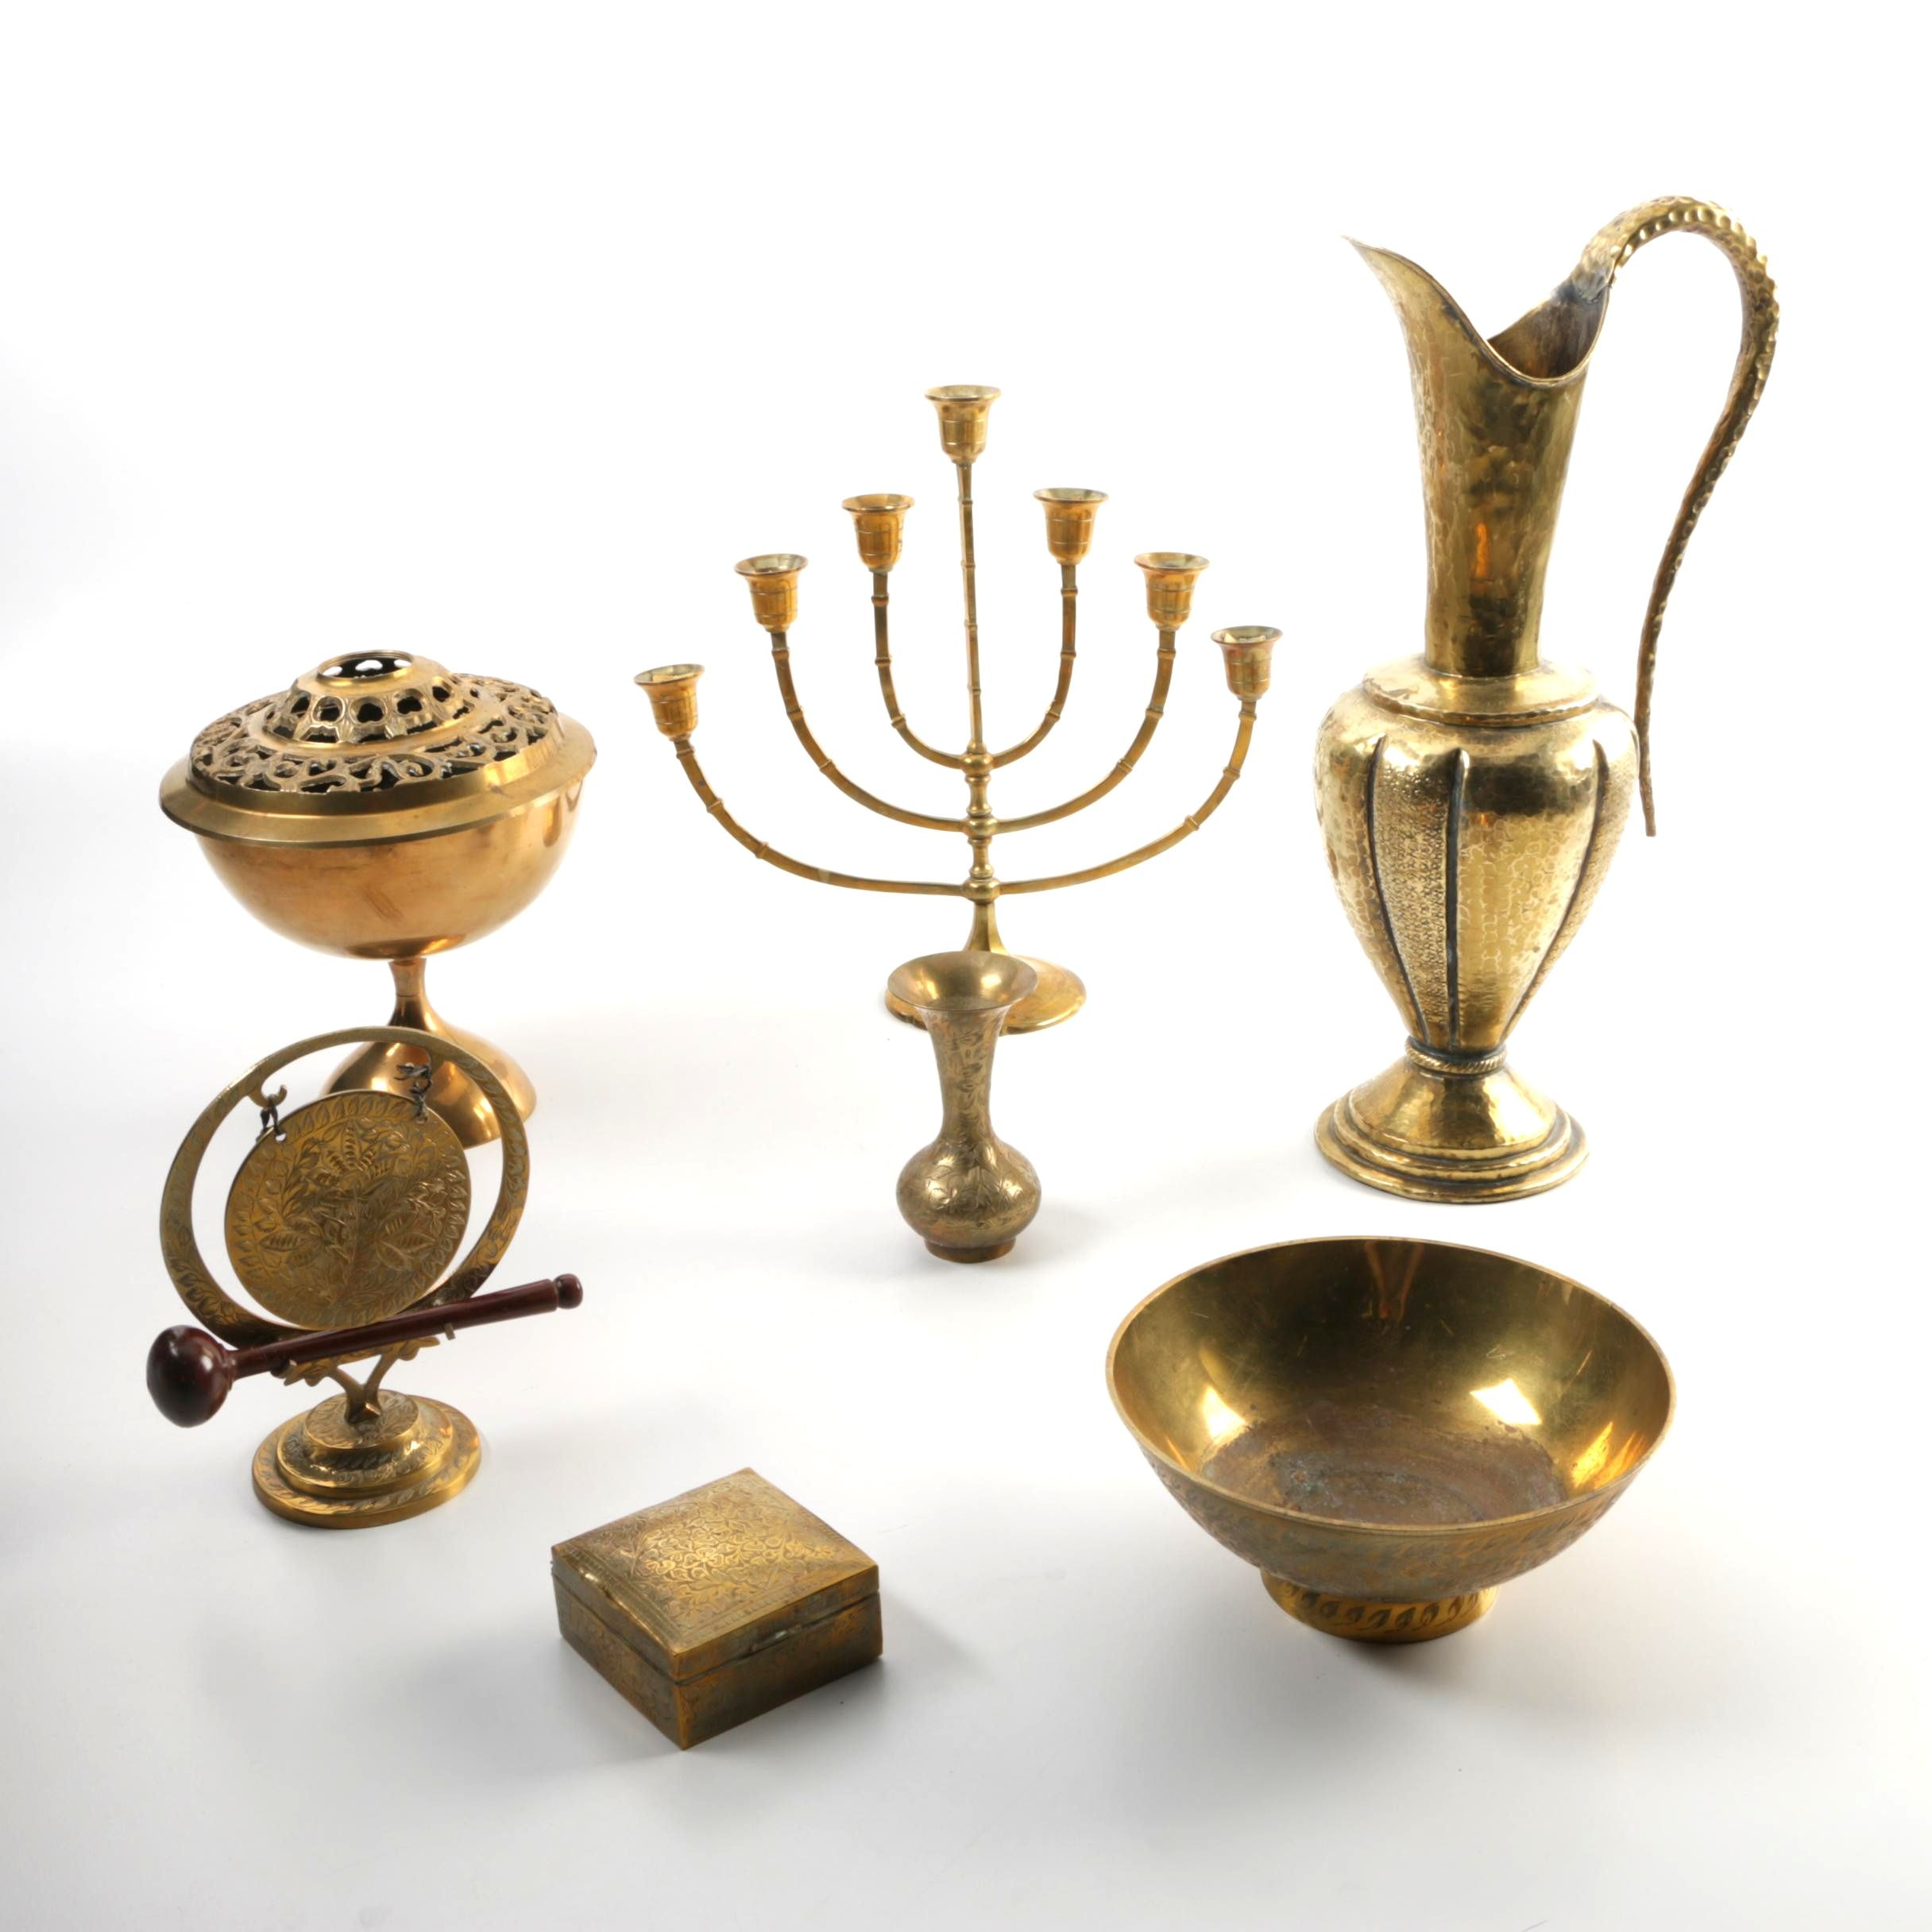 Collection of Brass Brass Decor